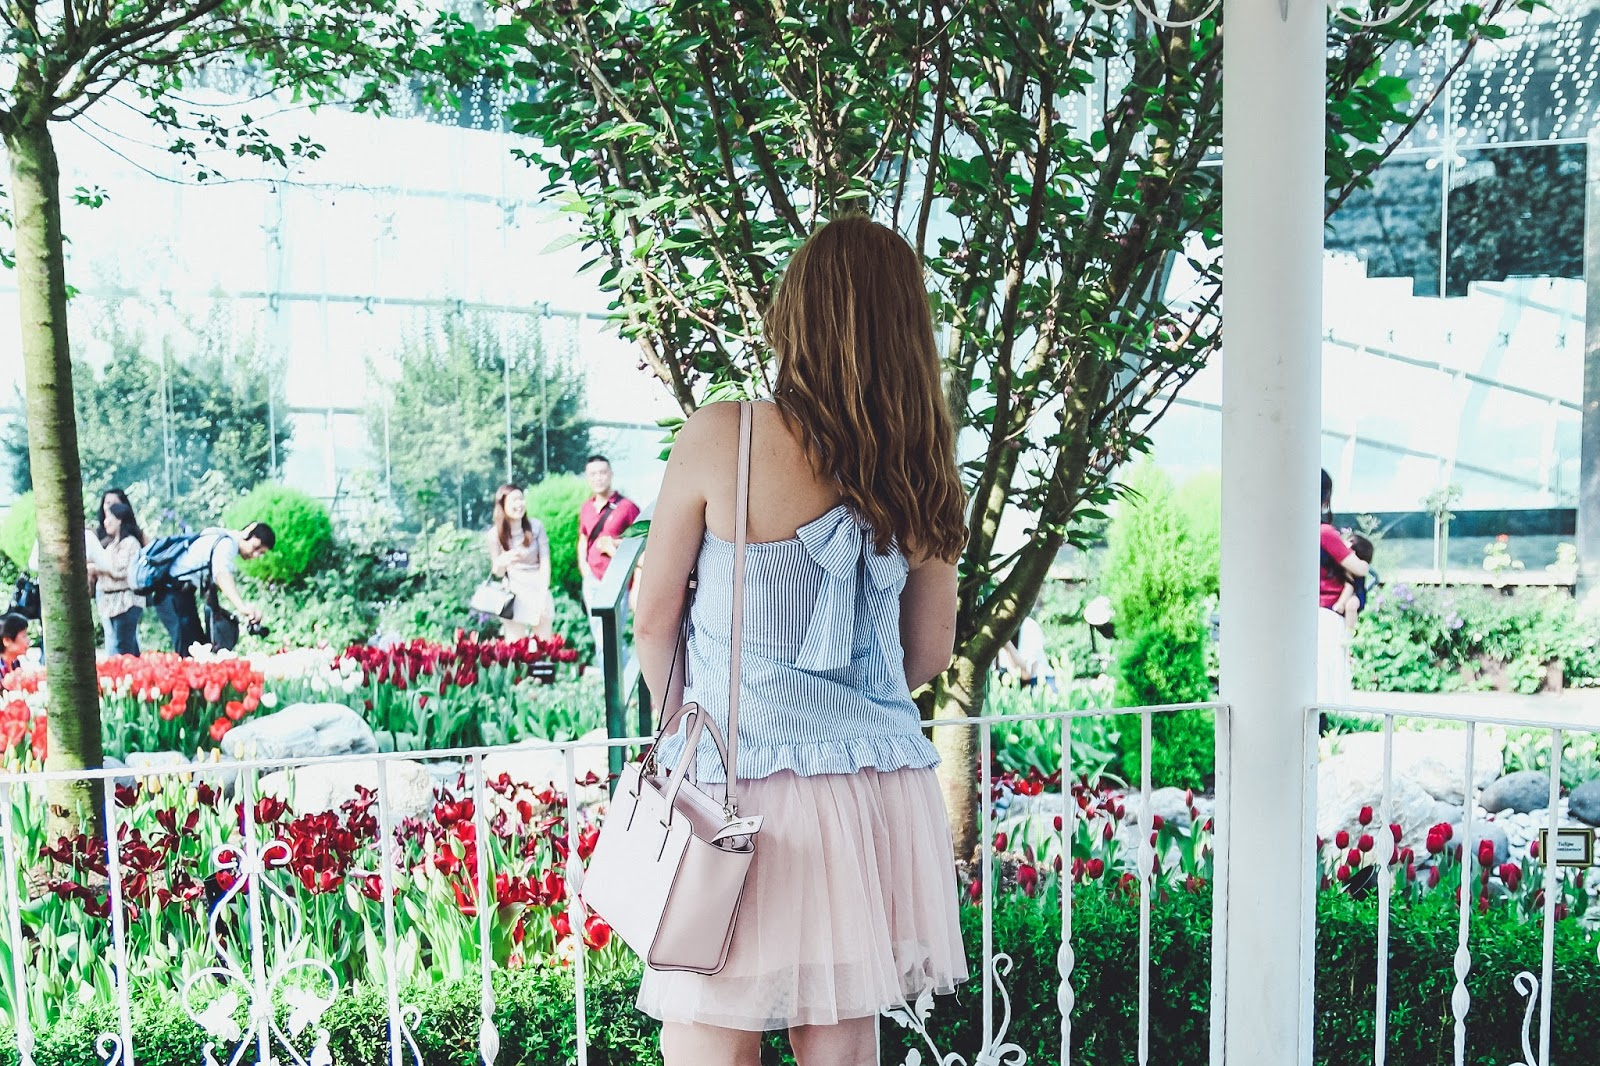 Everything You Need To Know About Visiting Gardens by the Bay: The Flower Dome